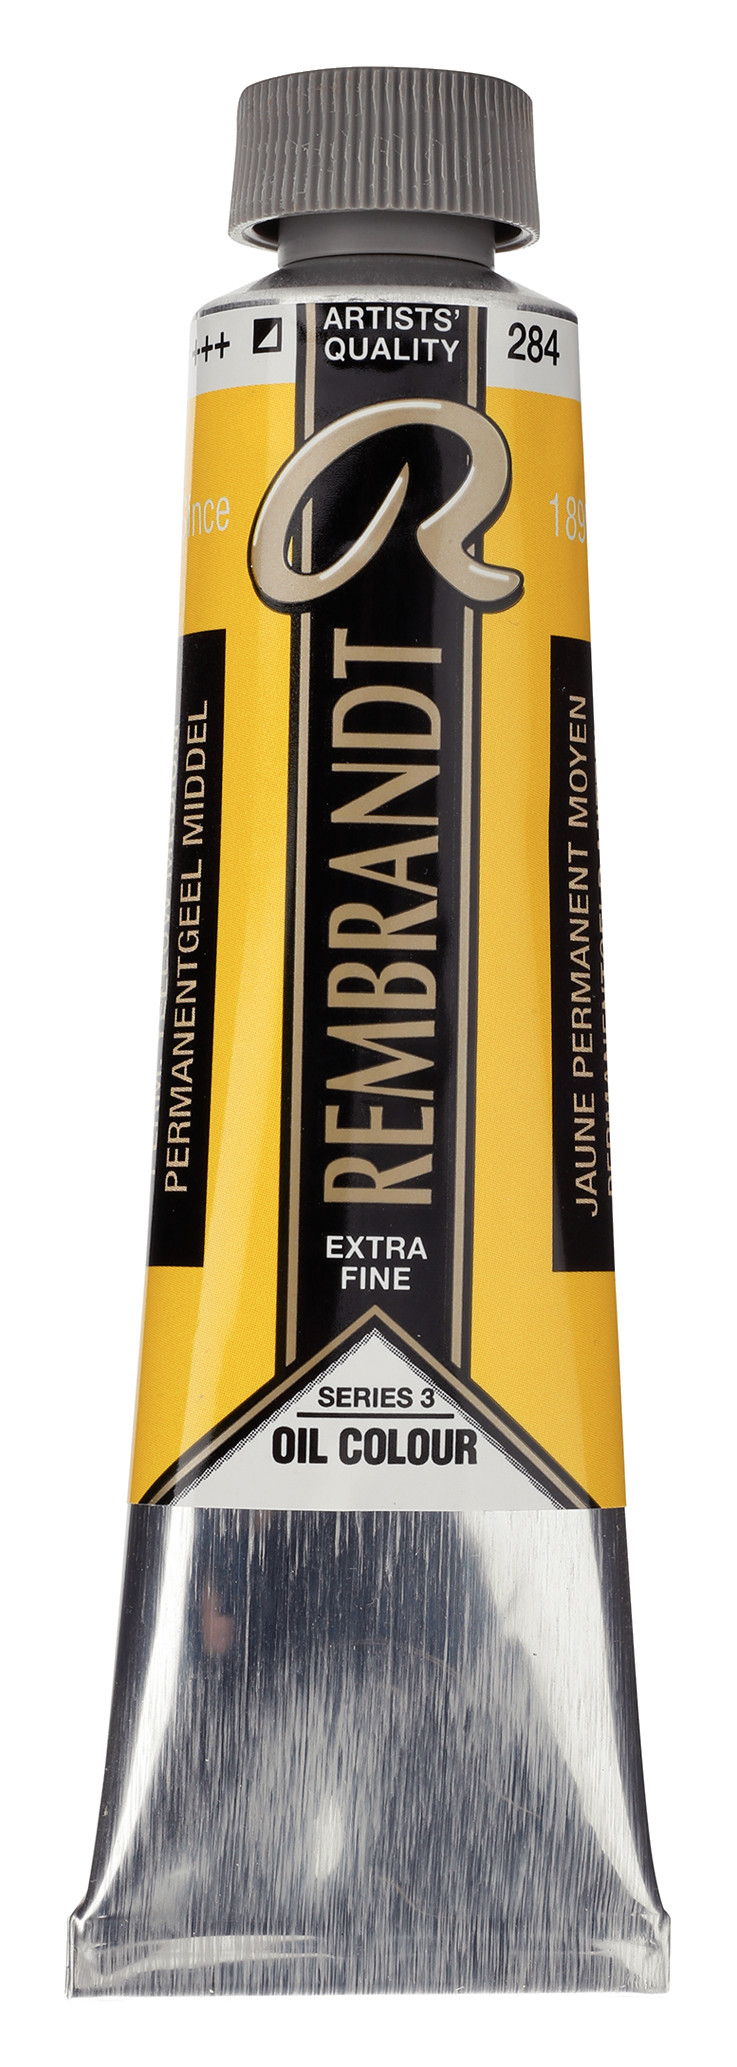 Rembrandt Oil colour Paint Permanent Yellow Medium (284) 40ml Tube